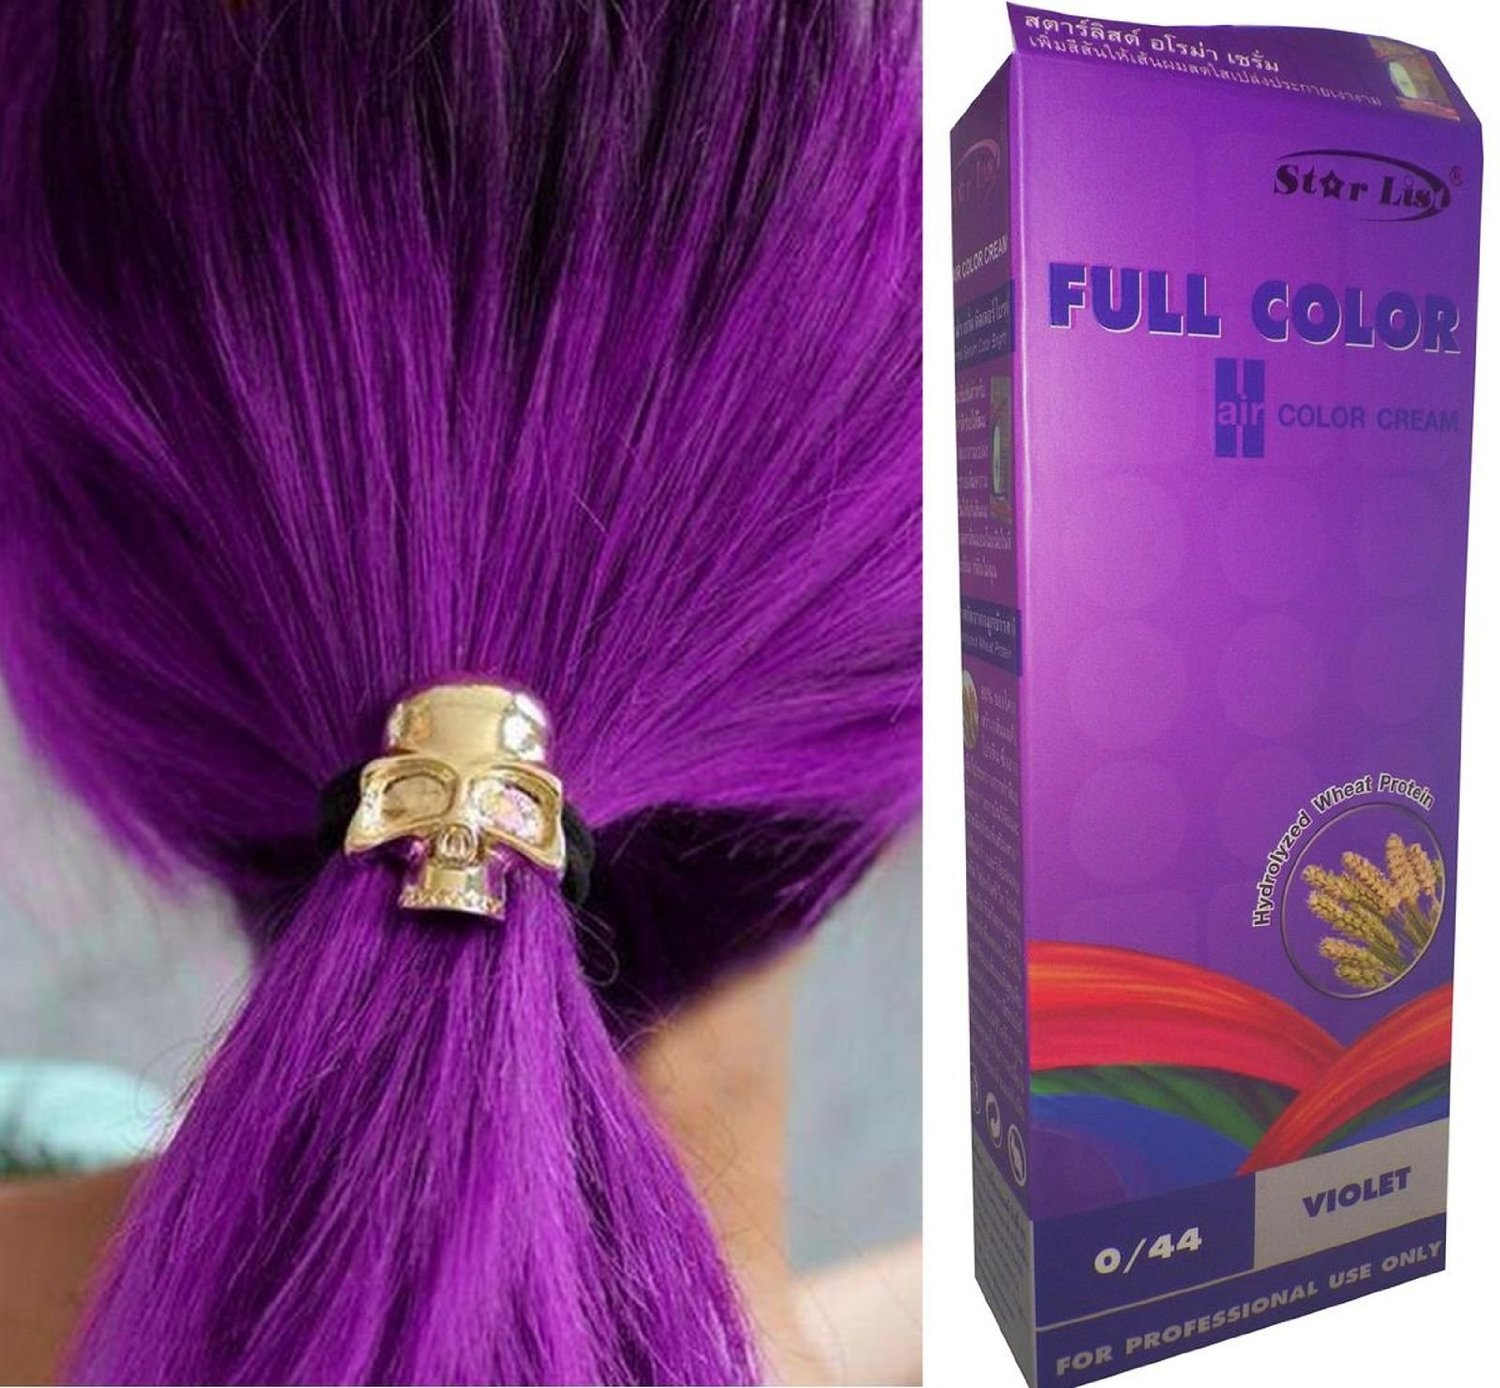 Amazon.com : Premium Permanent Hair Color Cream Dye Goth Cosplay Emo Punk 0/44 VIOLET : Beauty